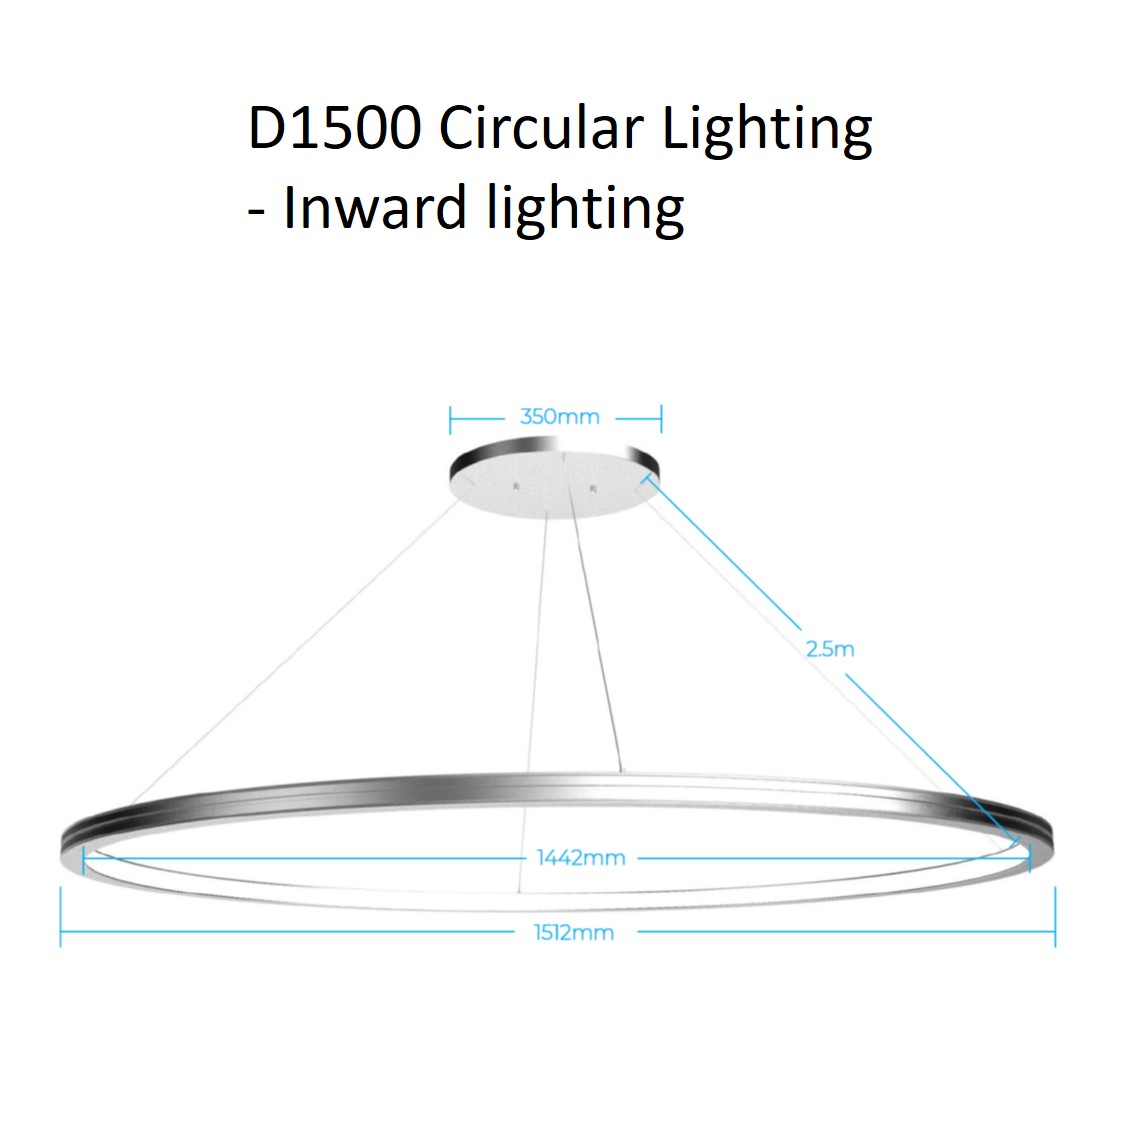 D1500 circular lighting - inward